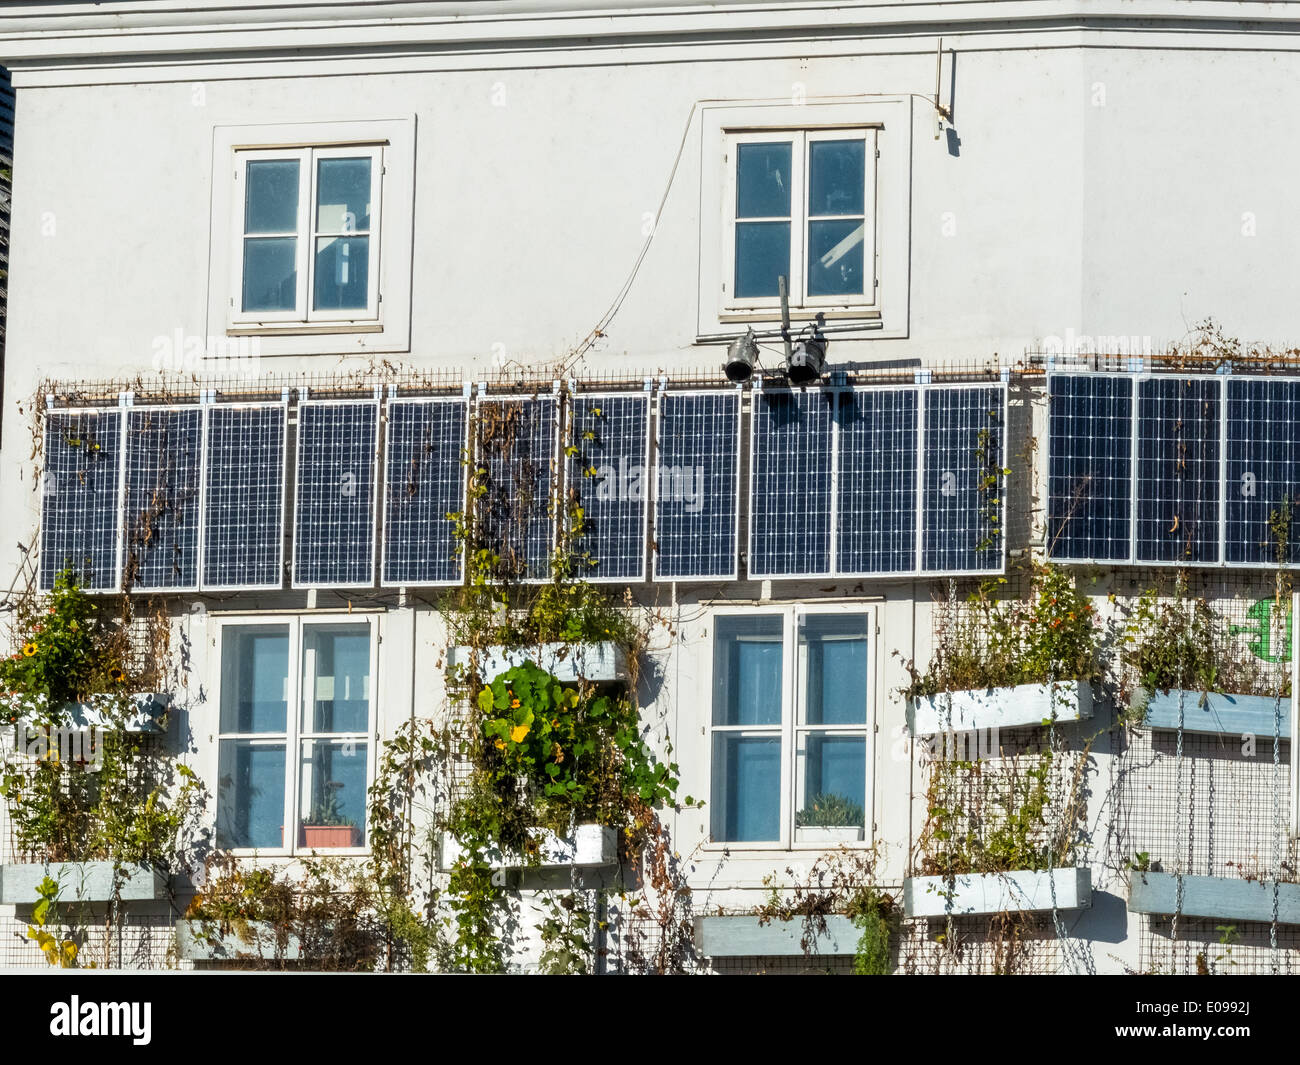 Solar cells to the use of solar energy on a dwelling house. Alternative energy fue town houses., Solarzellen zur Nutzung von Son - Stock Image